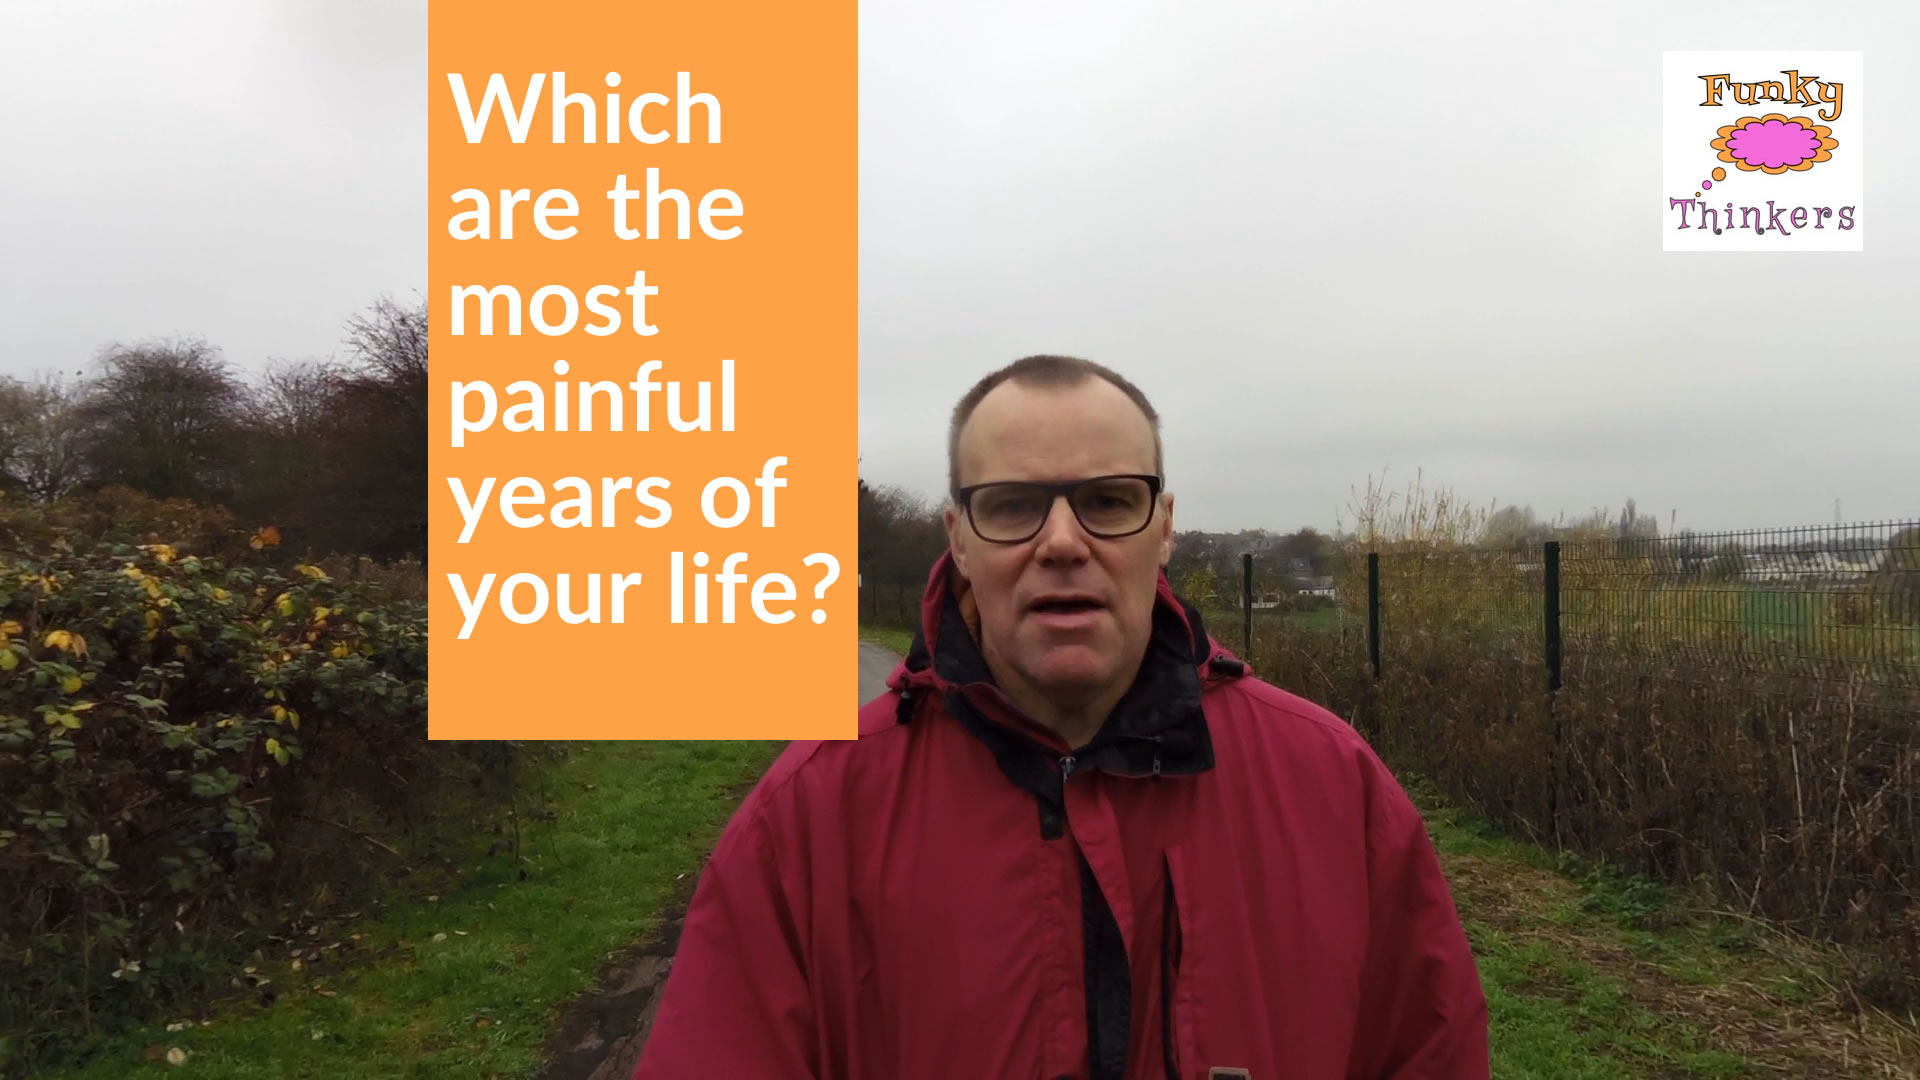 which are the most painful years of your life